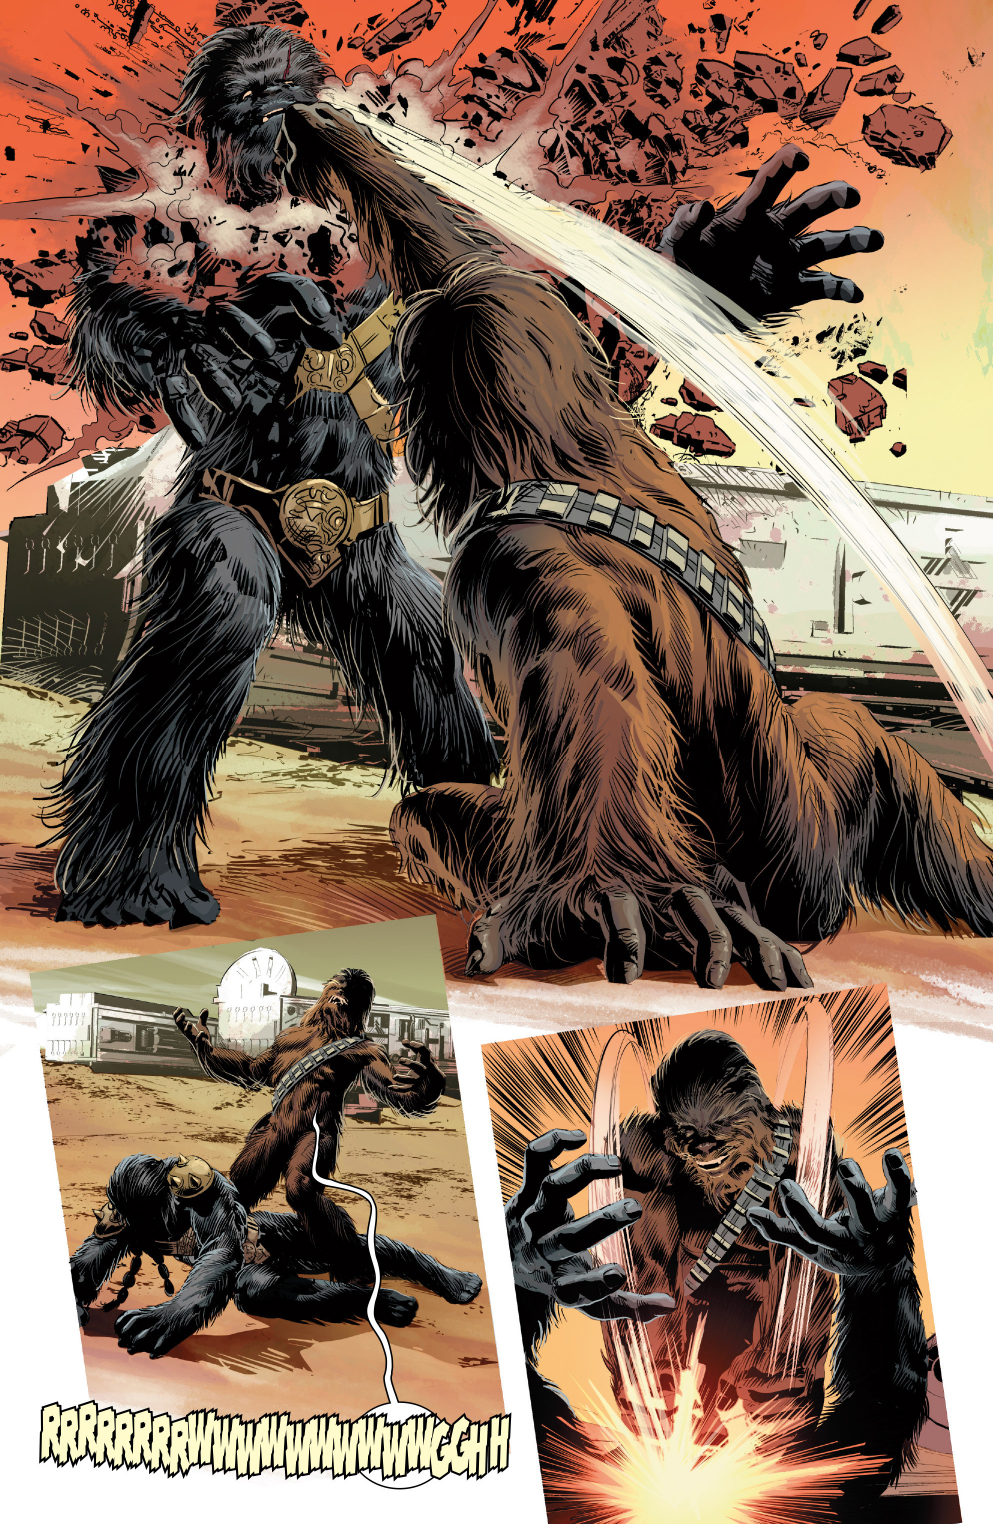 chewbacca vs Black Krrsantan